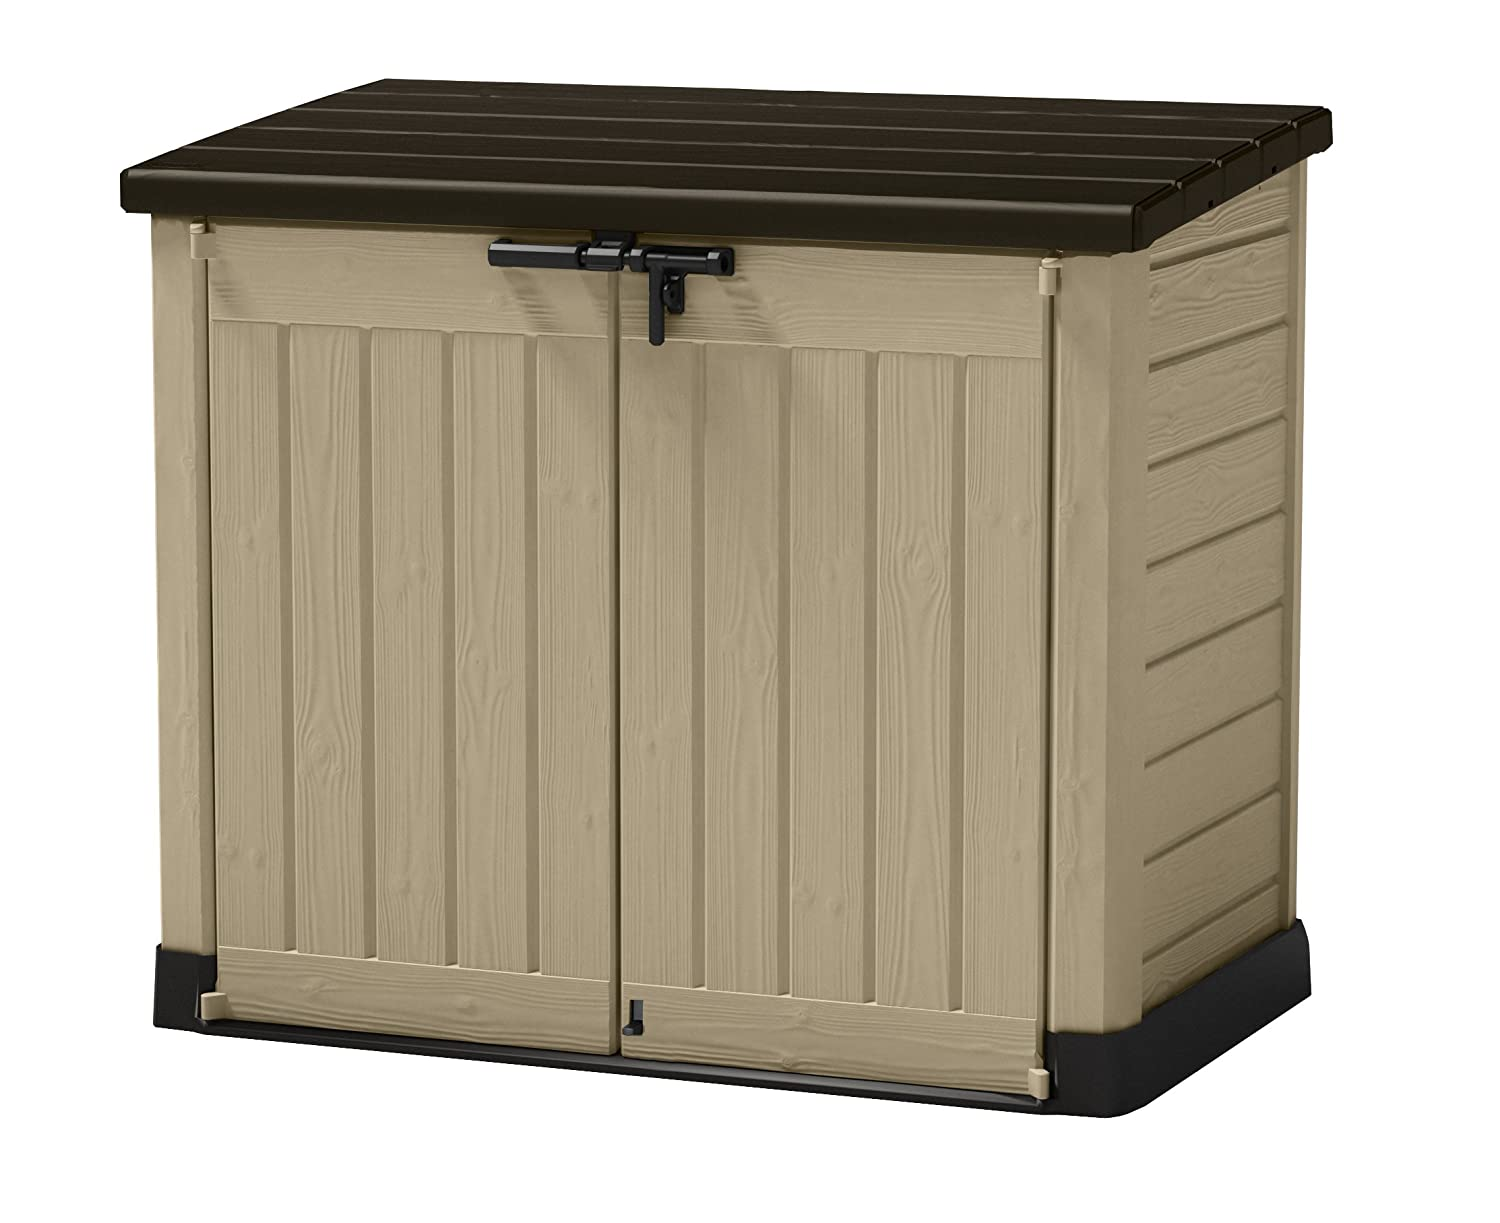 Keter Store-It-Out MAX 4.8 x 2.7 Outdoor Resin Horizontal Storage Shed 226814